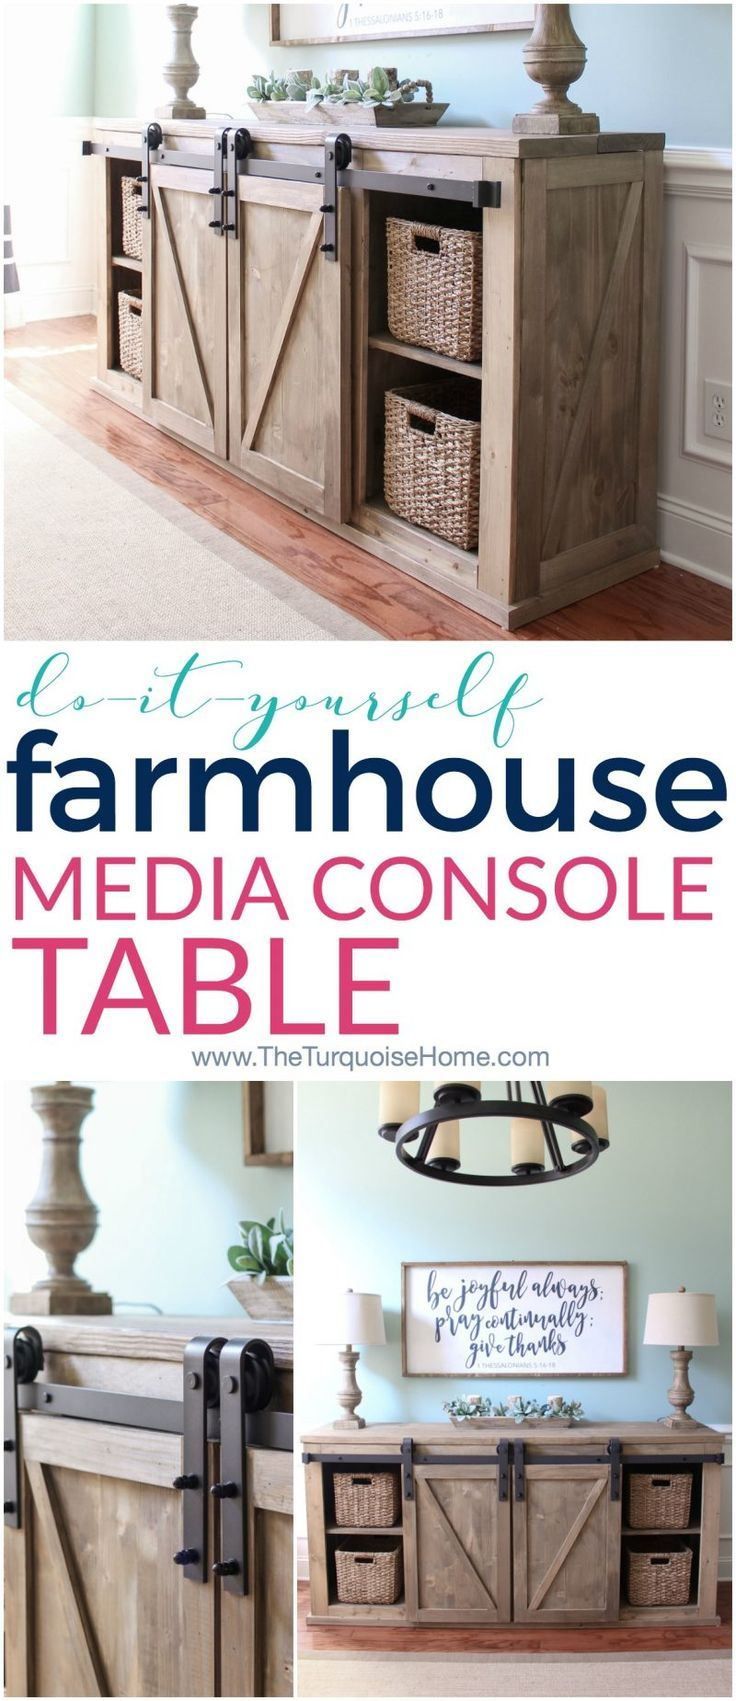 Diy farmhouse media console table bad ass pinterest home diy